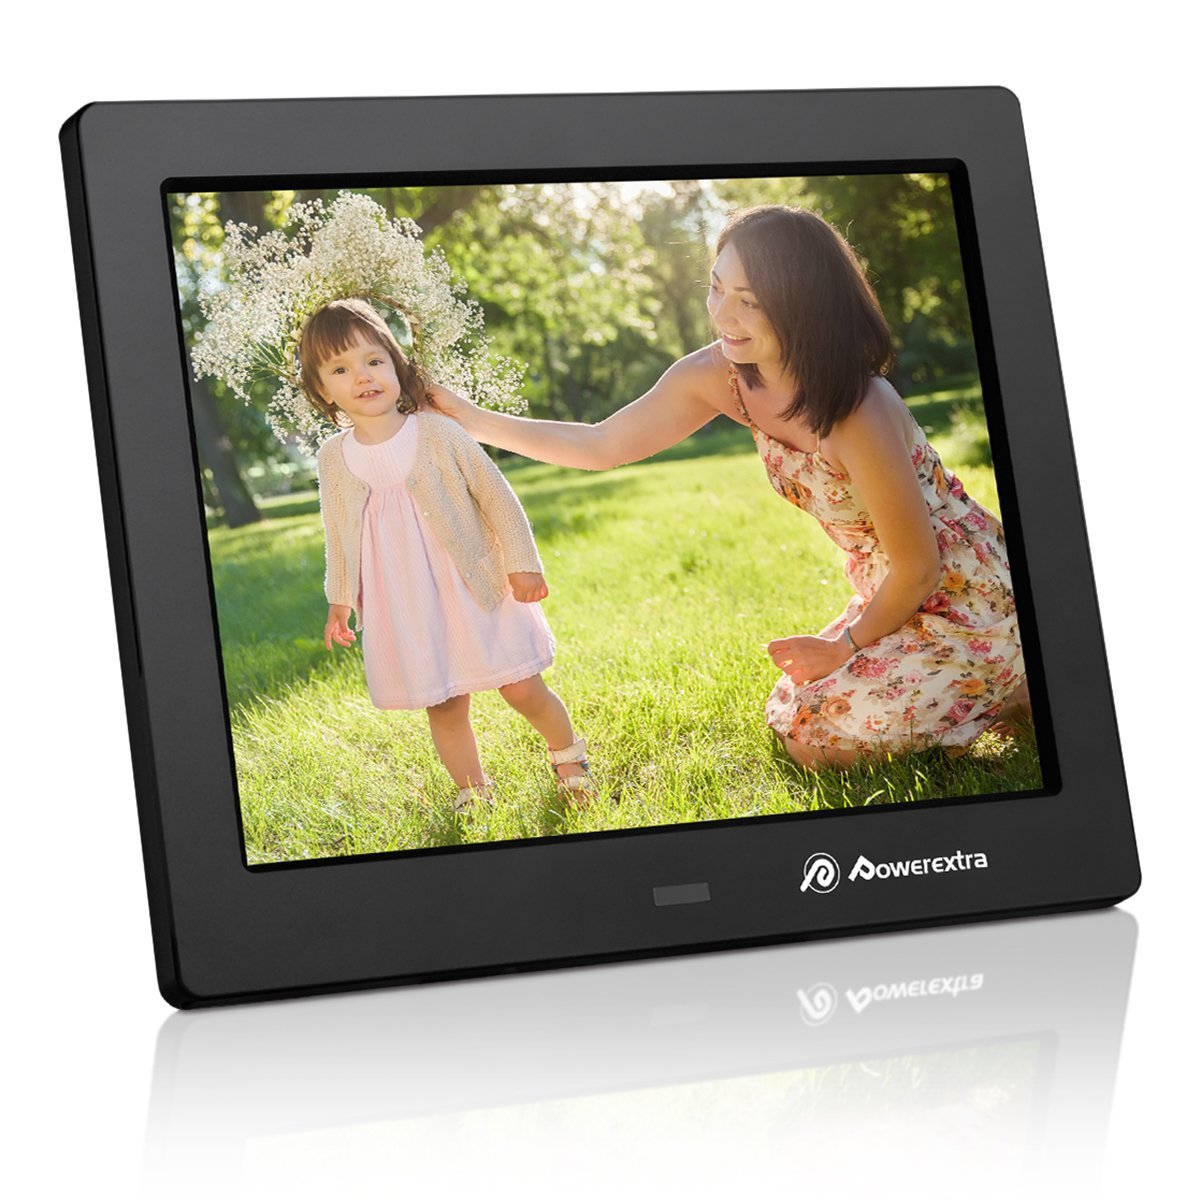 Powerextra 8 inch Digital Photo Frame HD Video Frame High Resolution Widescreen LCD With Remote Control - Black by Powerextra